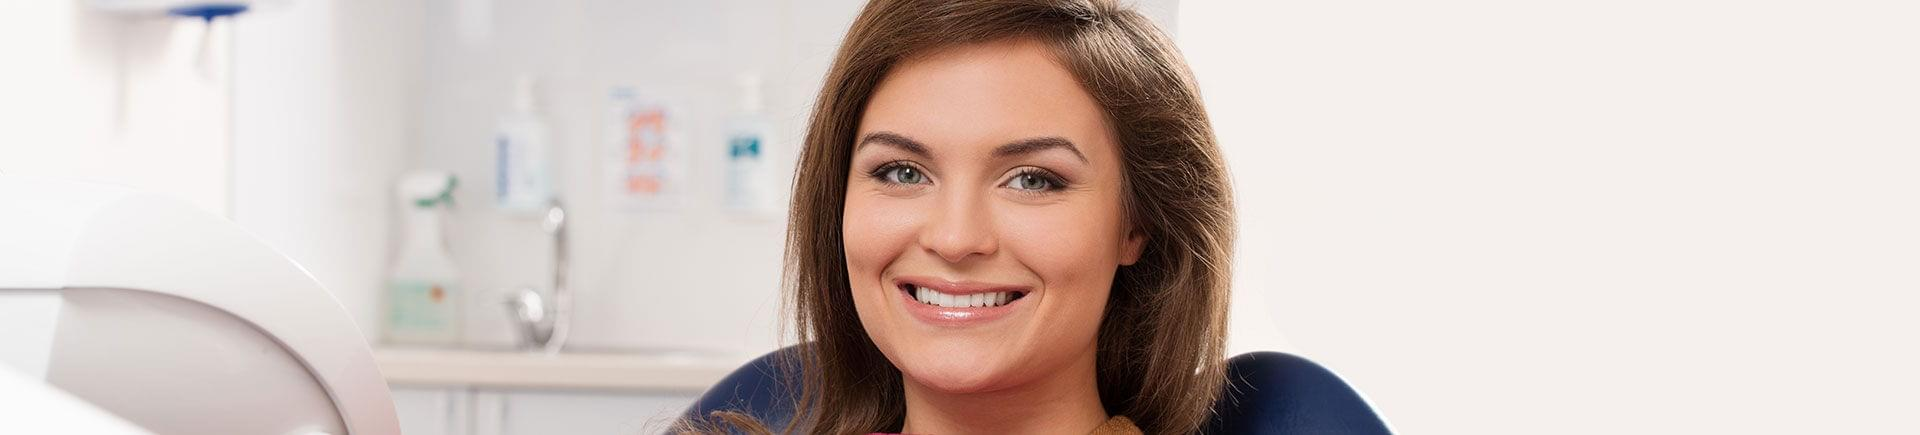 A cheerful young woman with a perfect smile at a dental appointment.